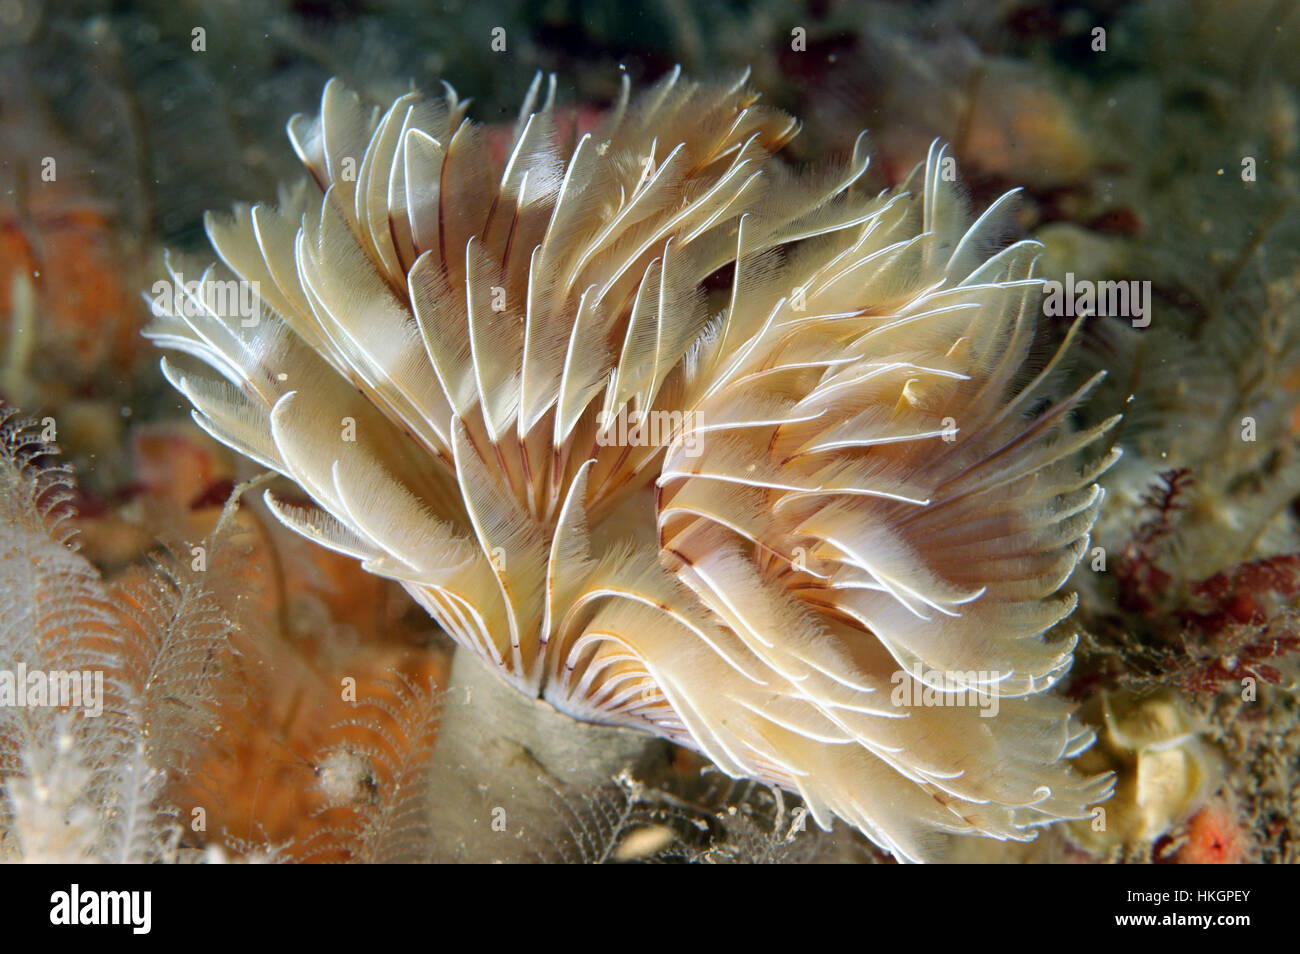 Tube worm - Bispira volutacornis Stock Photo